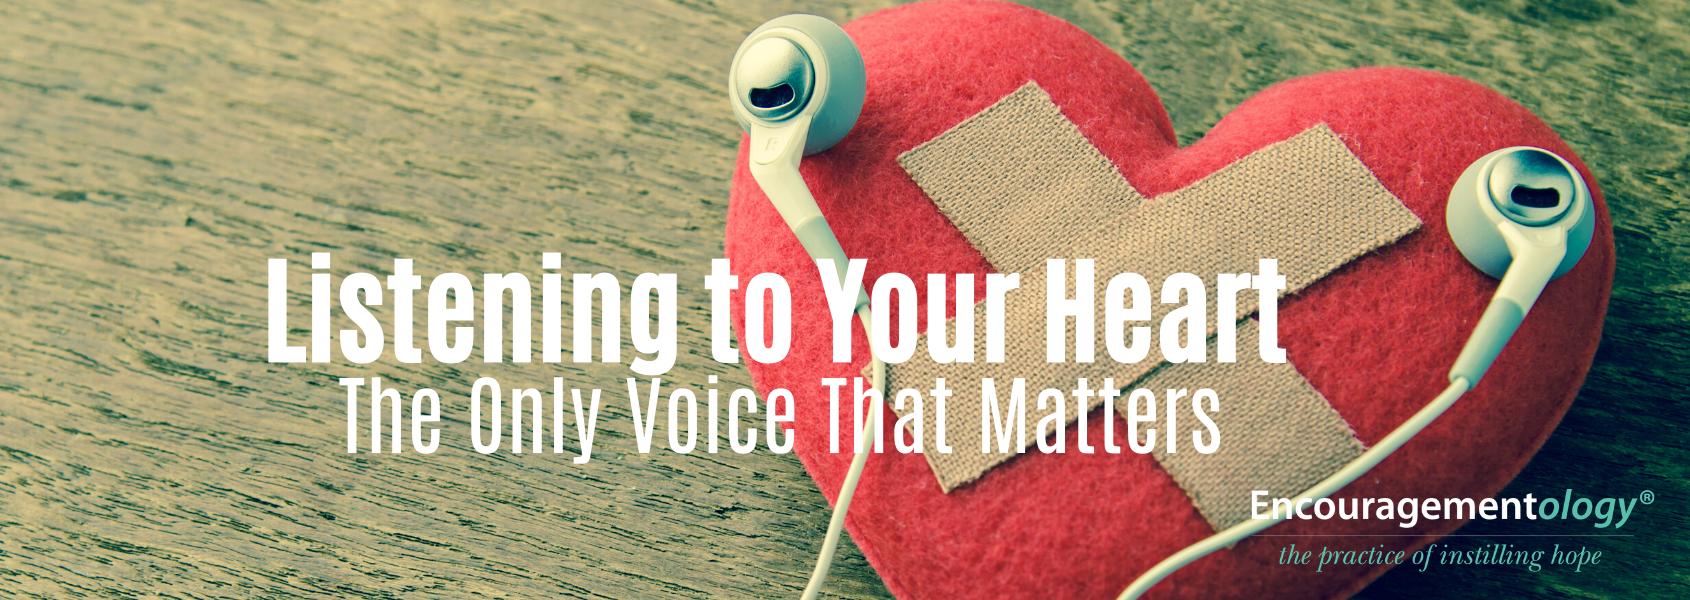 Listening to your heart the only voice that matters